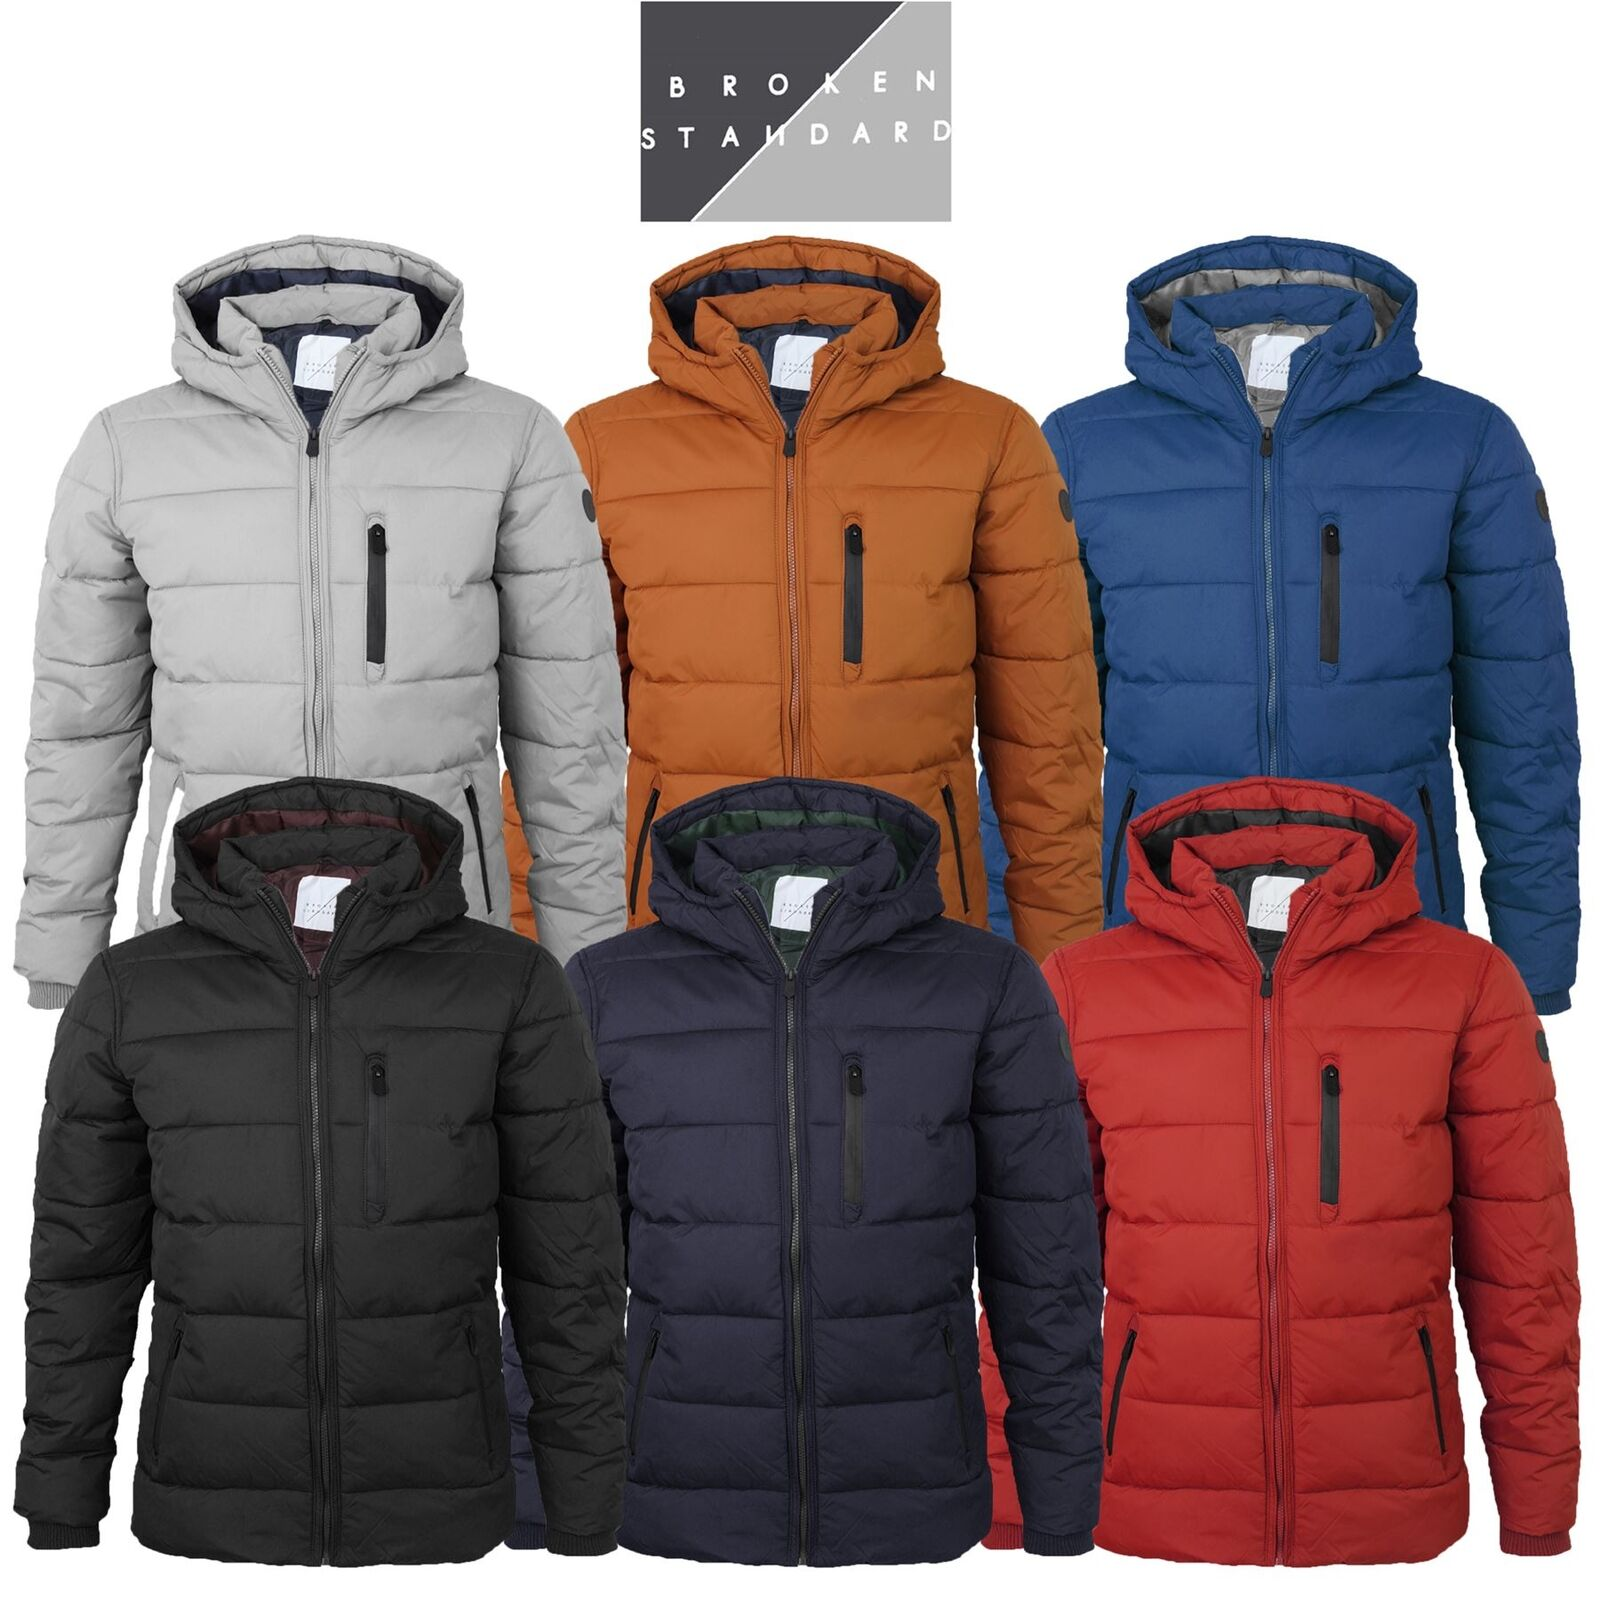 Mens Broken Standard Quilted Padded Puffer Hooded Winter Warm Bubble Coat